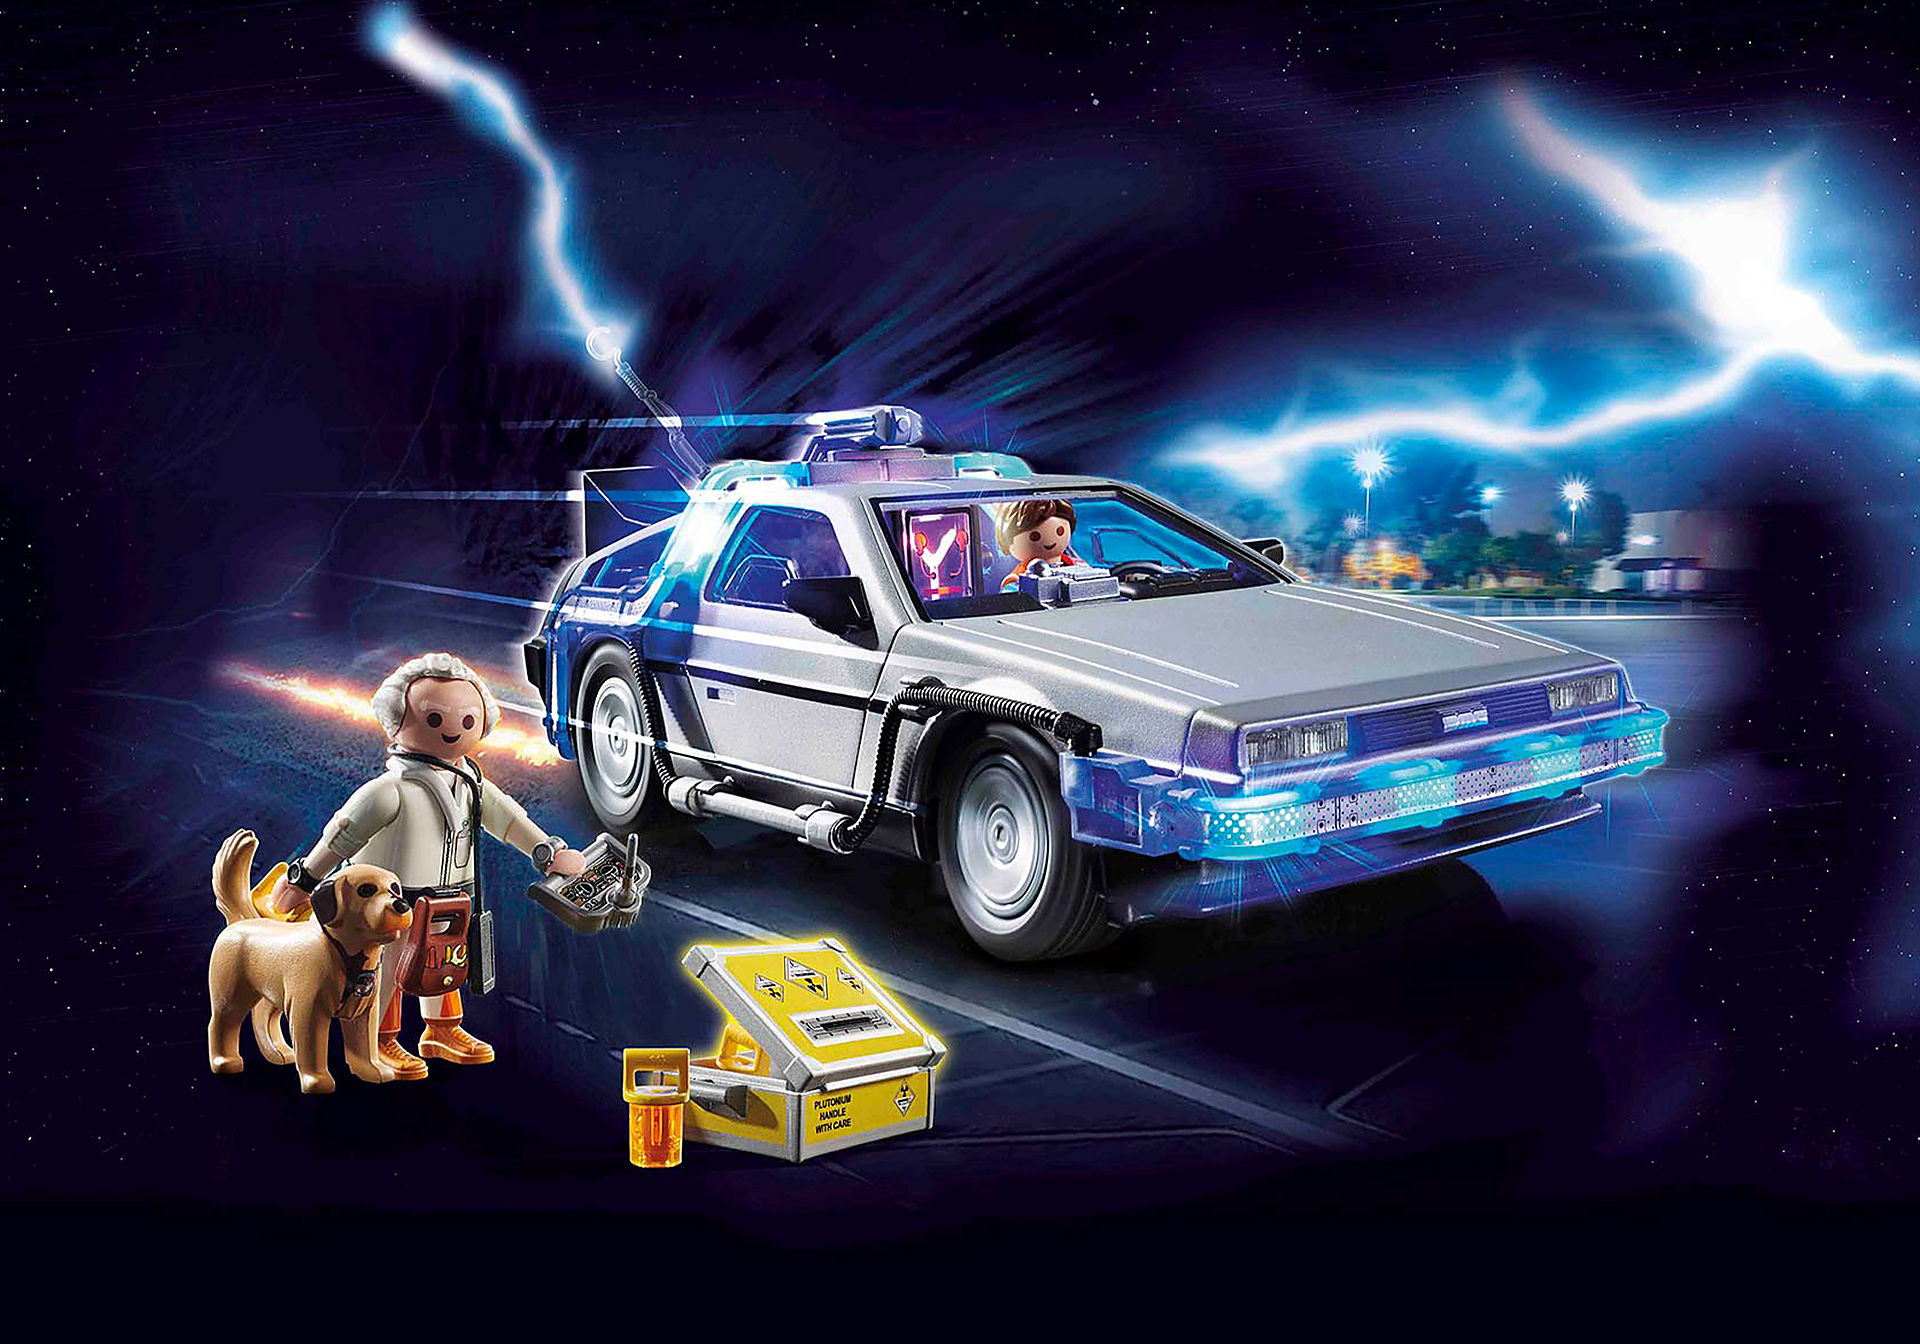 70317 Back to the Future DeLorean zoom image1